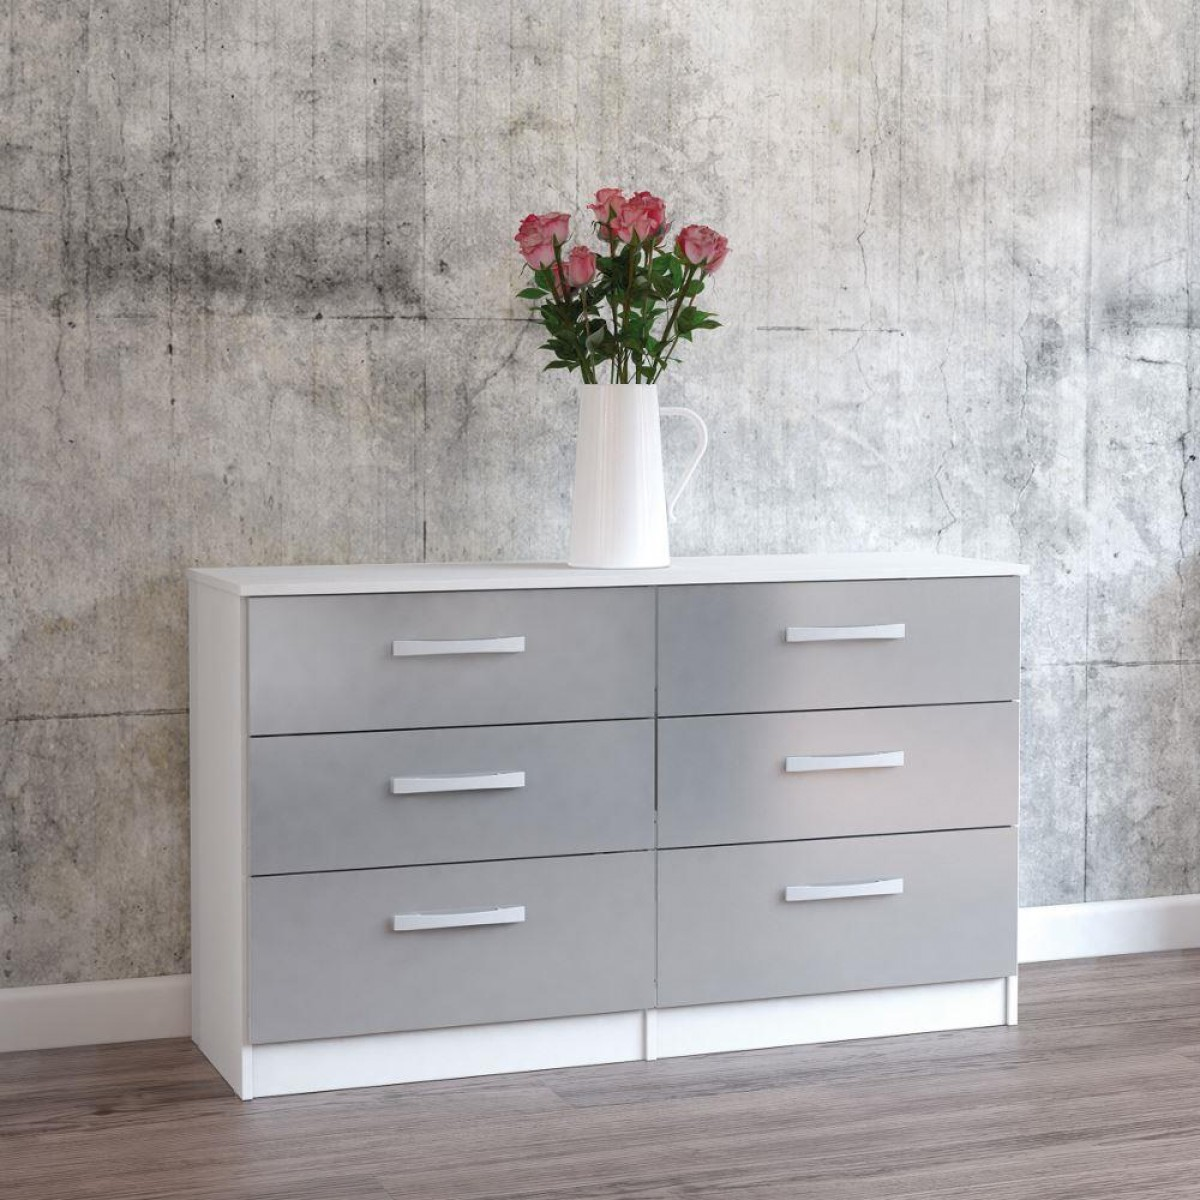 Lynx White and Grey 6 Drawer Wide Chest